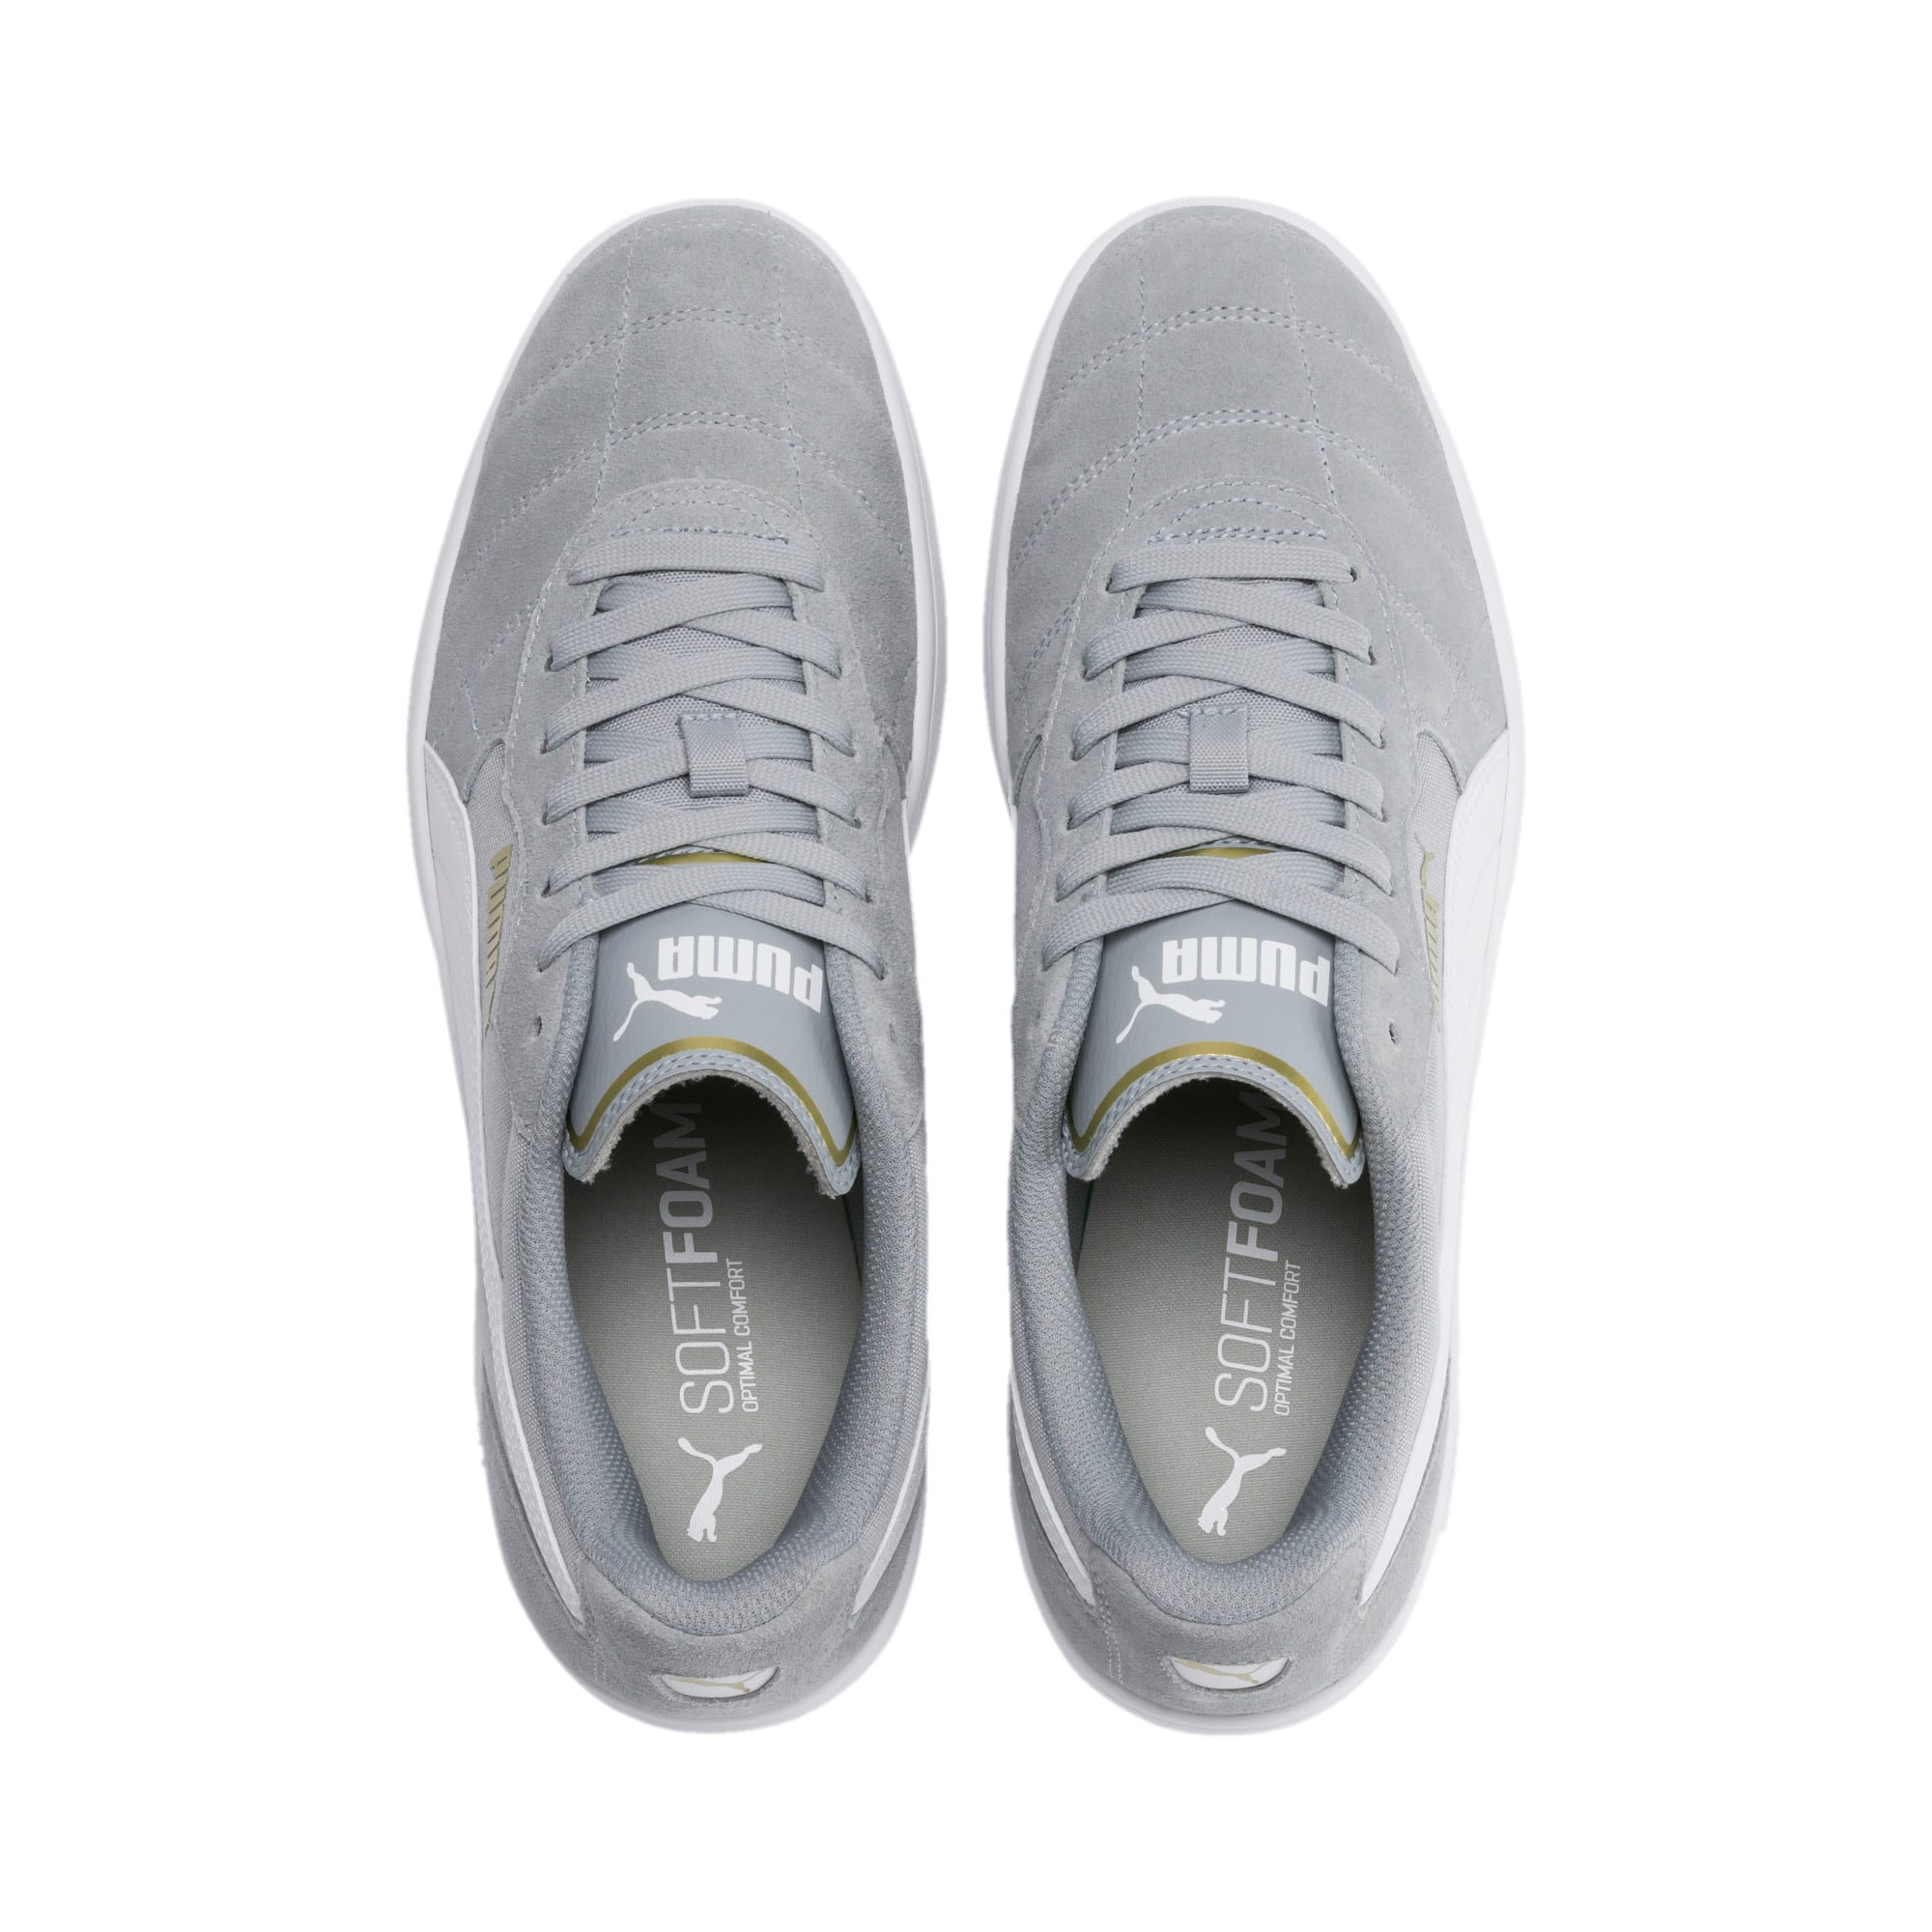 Thumbnail 7 of Astro Kick Sneakers, High Rise-Puma White-Gold, medium